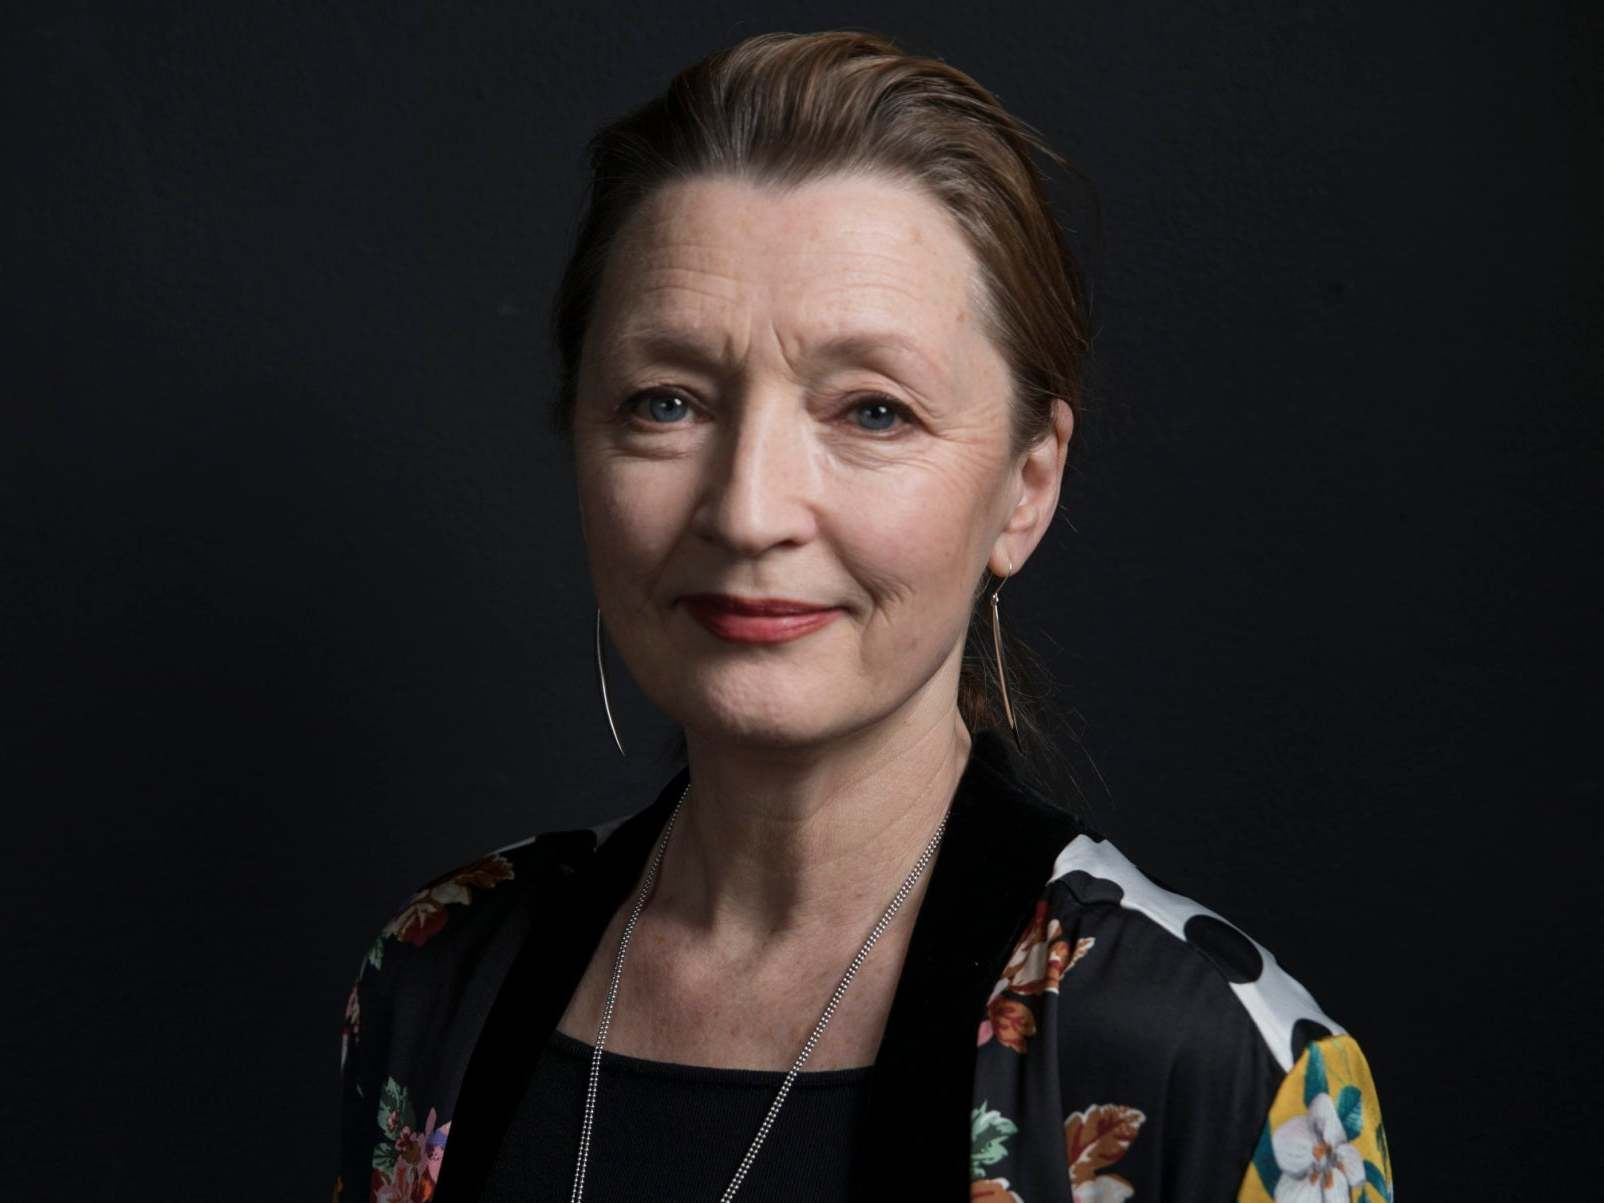 Lesley Manville interview: 'Your needs and wants and sexual desires don't stop at 35'